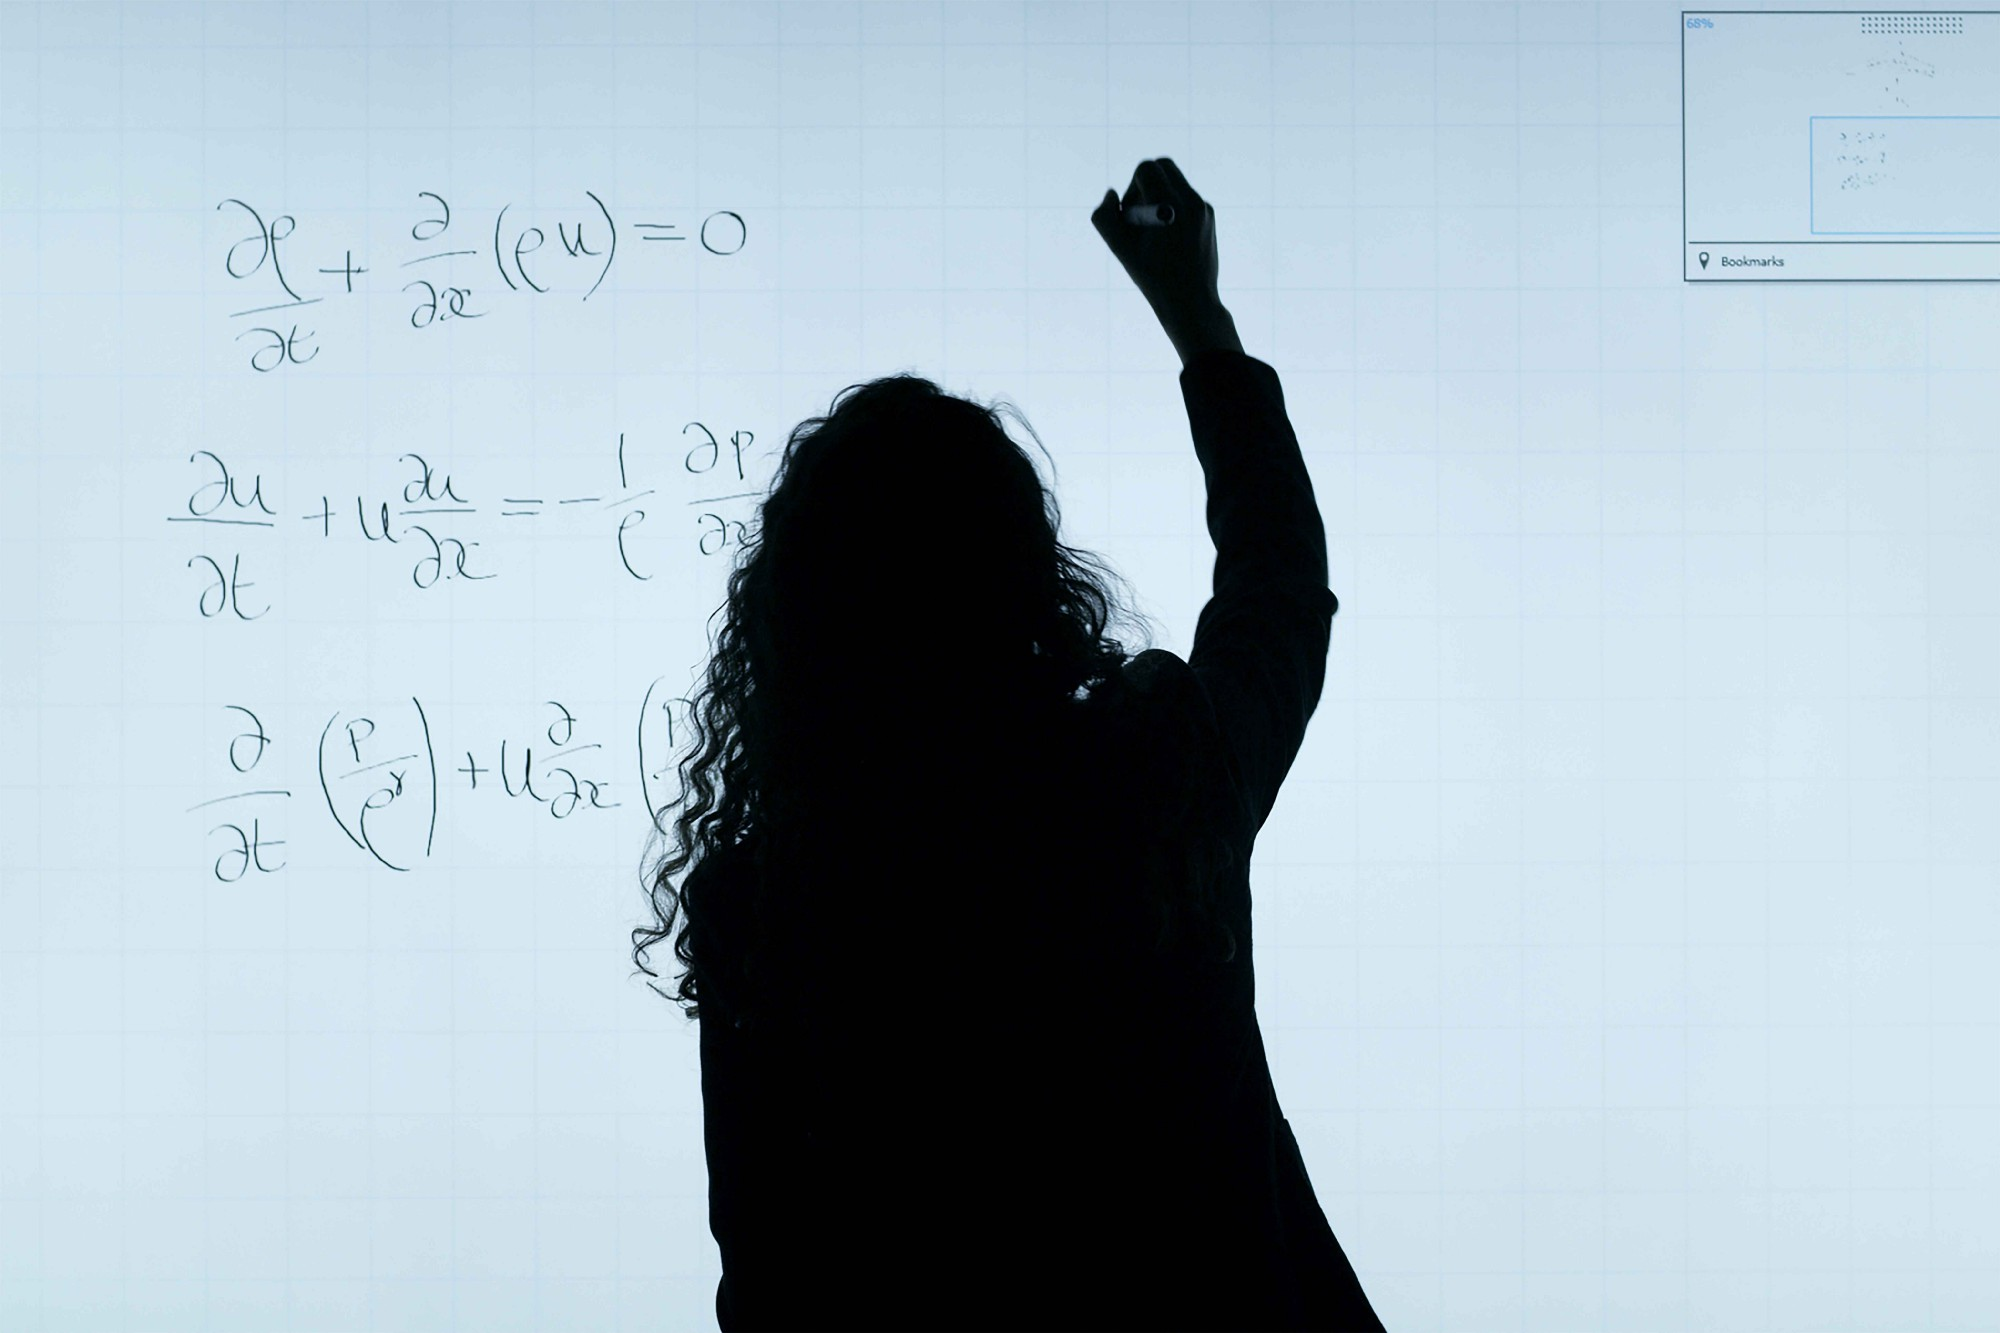 Sillouhette of a woman writing calculus formulas on a white board.